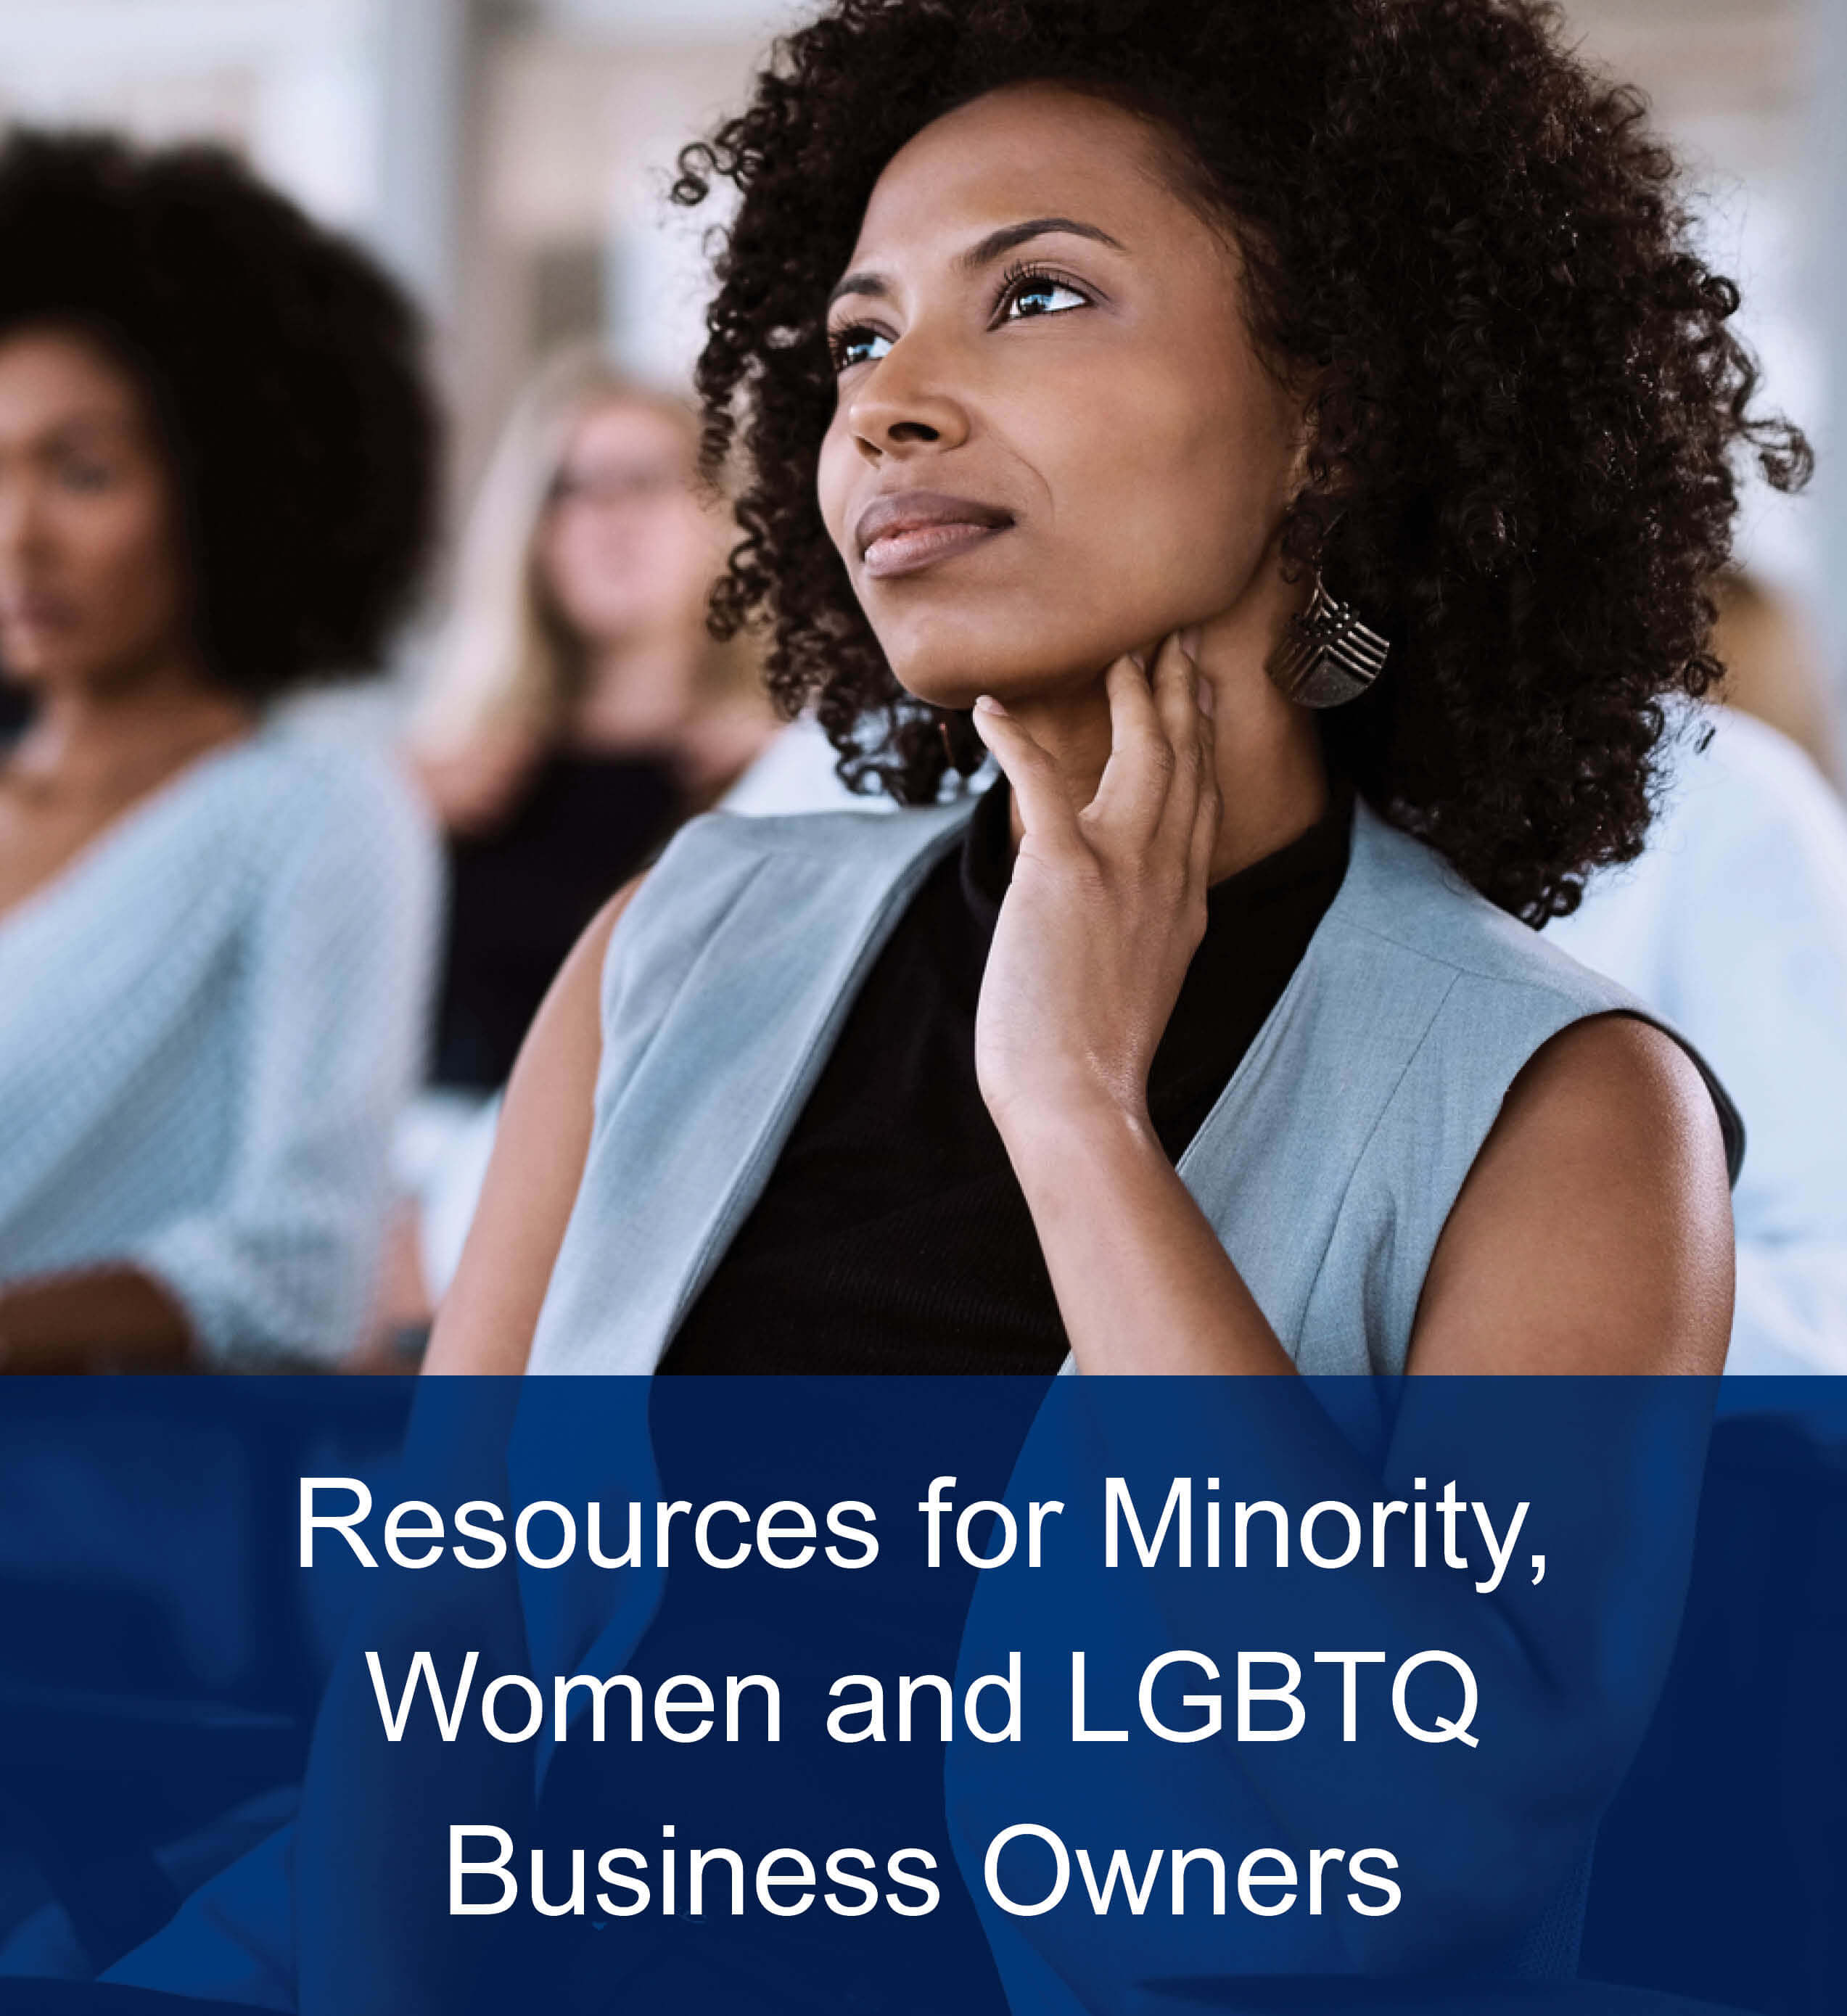 Resources for Minority Women and LGBTQ Business Owners